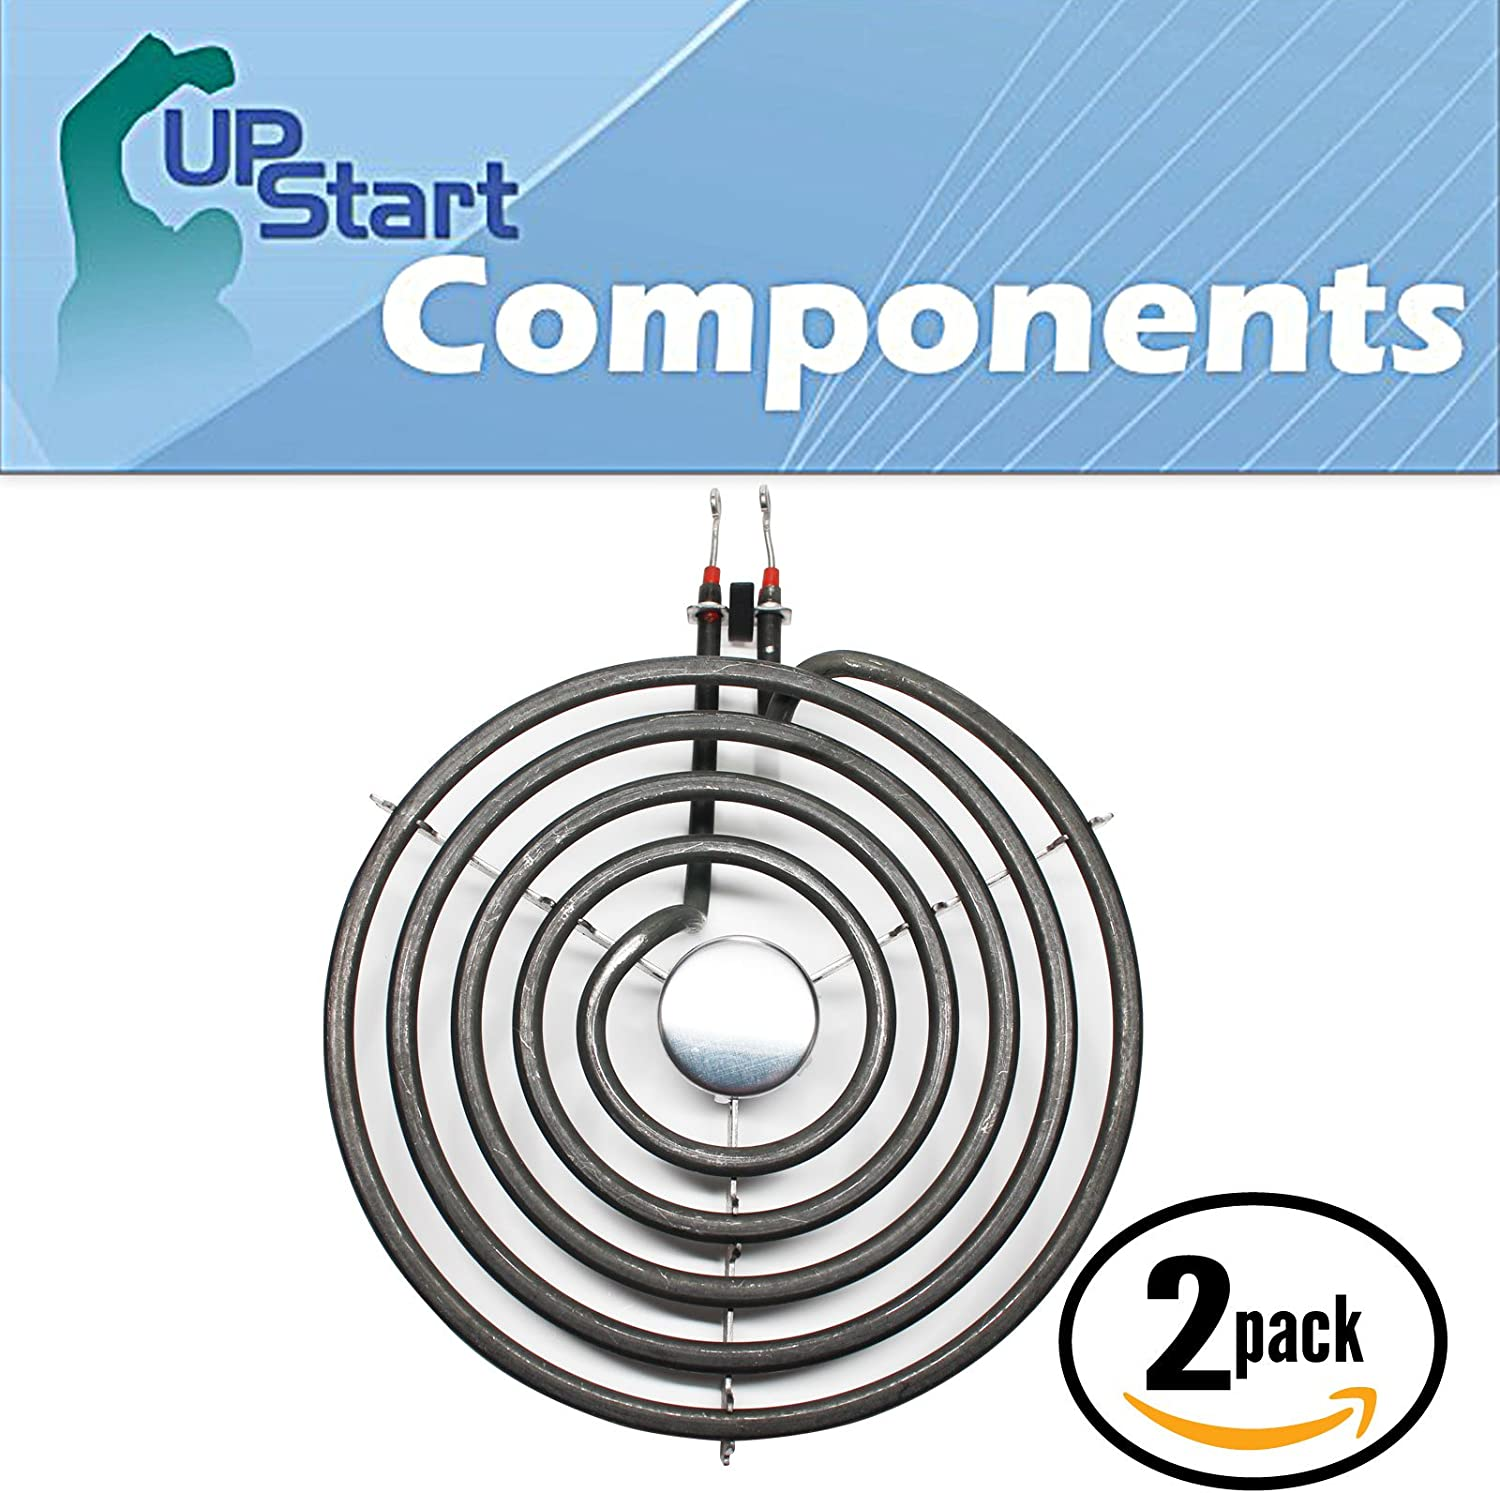 2-Pack Surface Burner 8 inch 5 Turns Element Replacement for Jenn-Air, Amana, Whirlpool - Compatible with Jenn-Air A100, Amana ARR6400WW, Jenn-Air A100B, Maytag CRE7500ACW, Whirlpool RF263LXTQ3